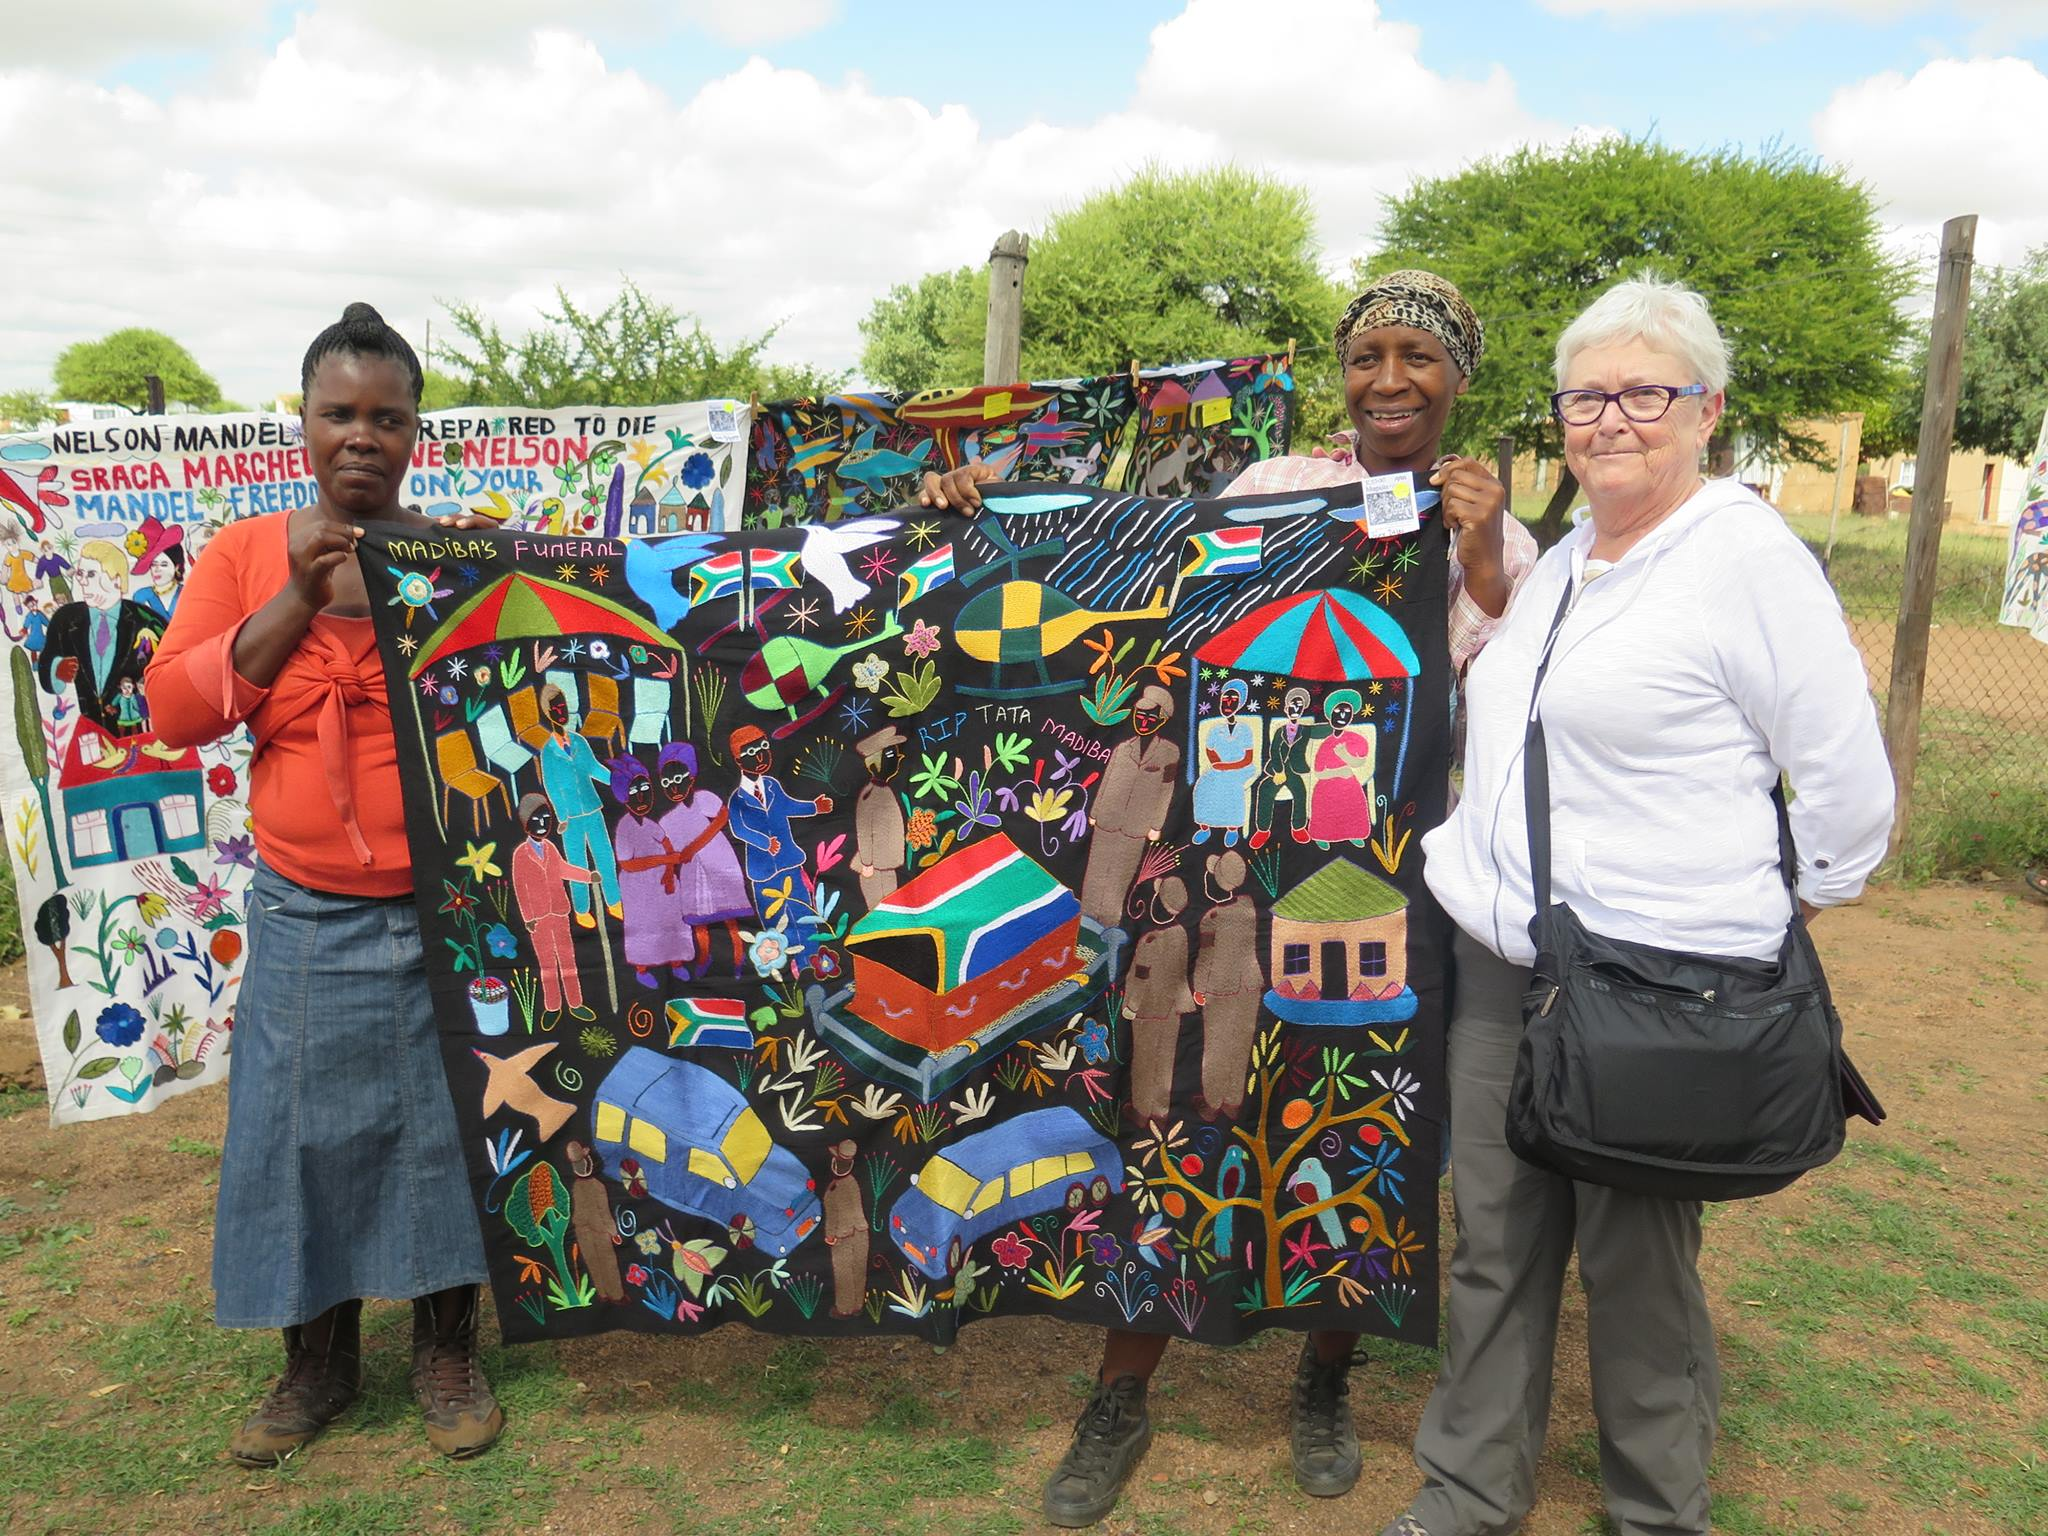 African Threads Tours to South Africa led by textile artist Valerie Hearder, born and raised in South Africa and now living in Nova Scotia, Canada. Valerie has won numerous awards for her own art quilts, written two books on her techniques, and participates actively with other textile artists in her community and online.